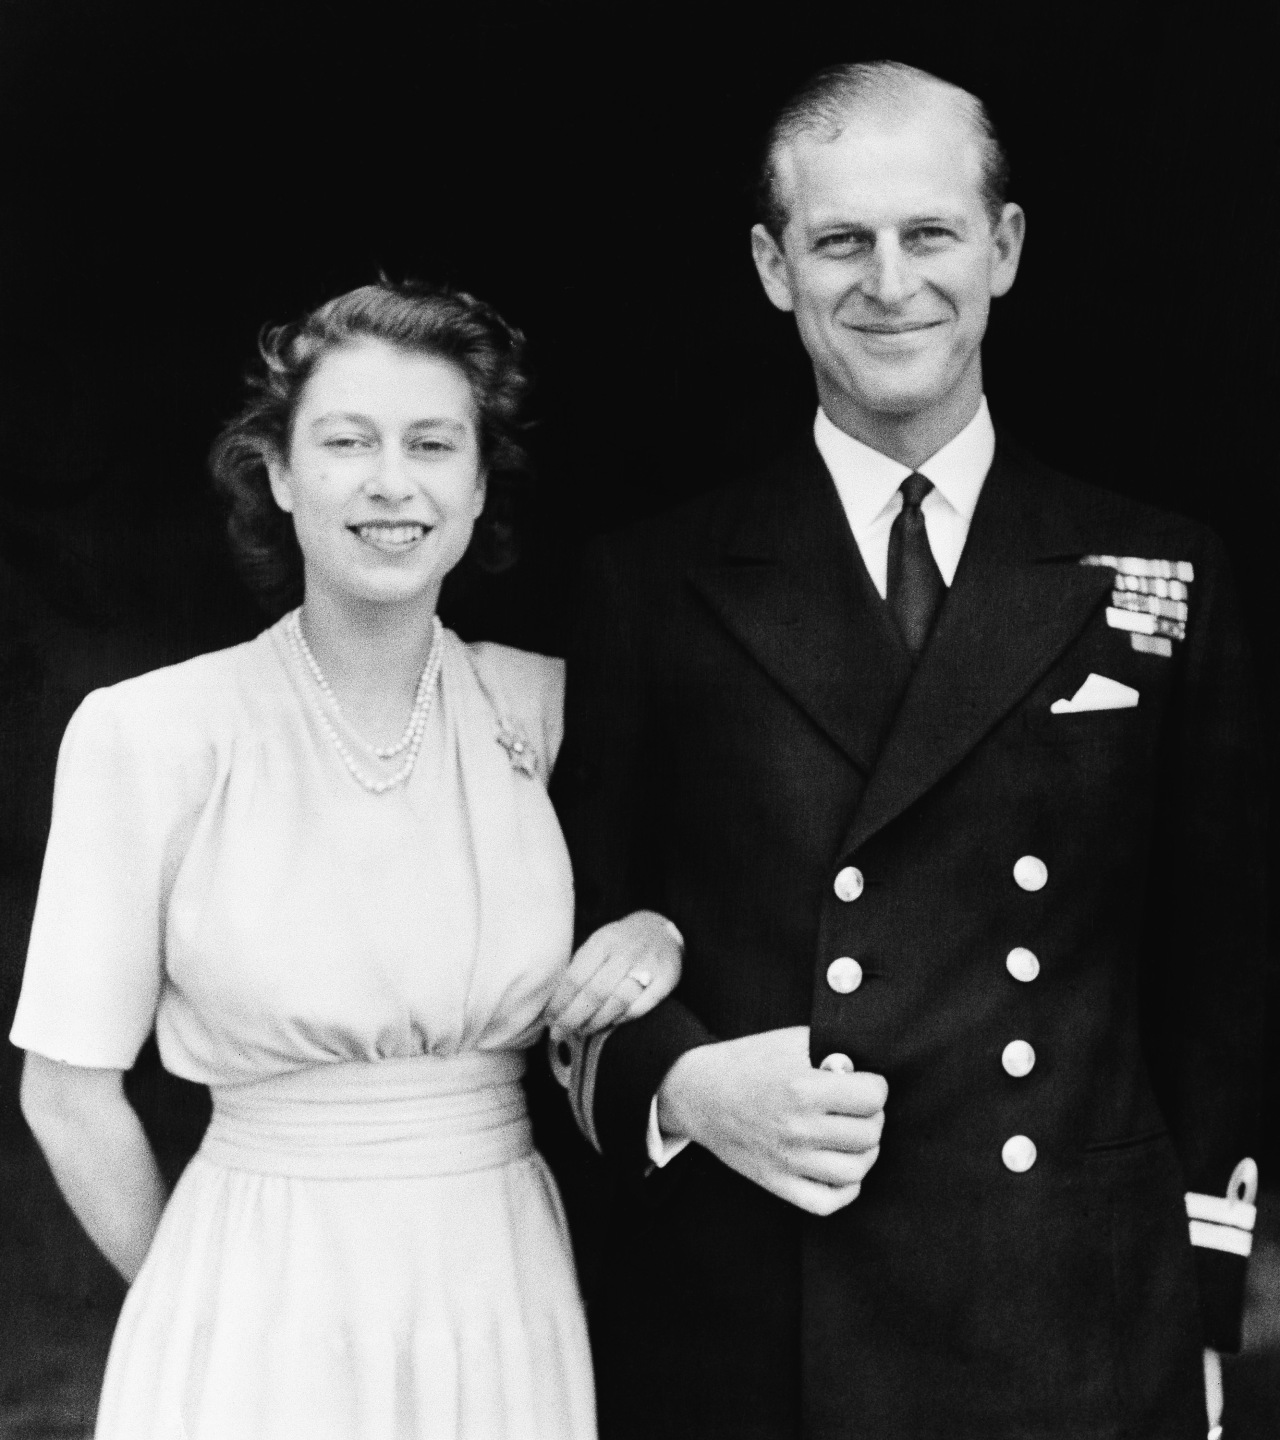 This July 10, 1947 official photo shows Britain's Princess Elizabeth, heir presumptive to the British throne and her fiance, Lieut. Philip Mountbatten, in London. (AP-Yonhap)